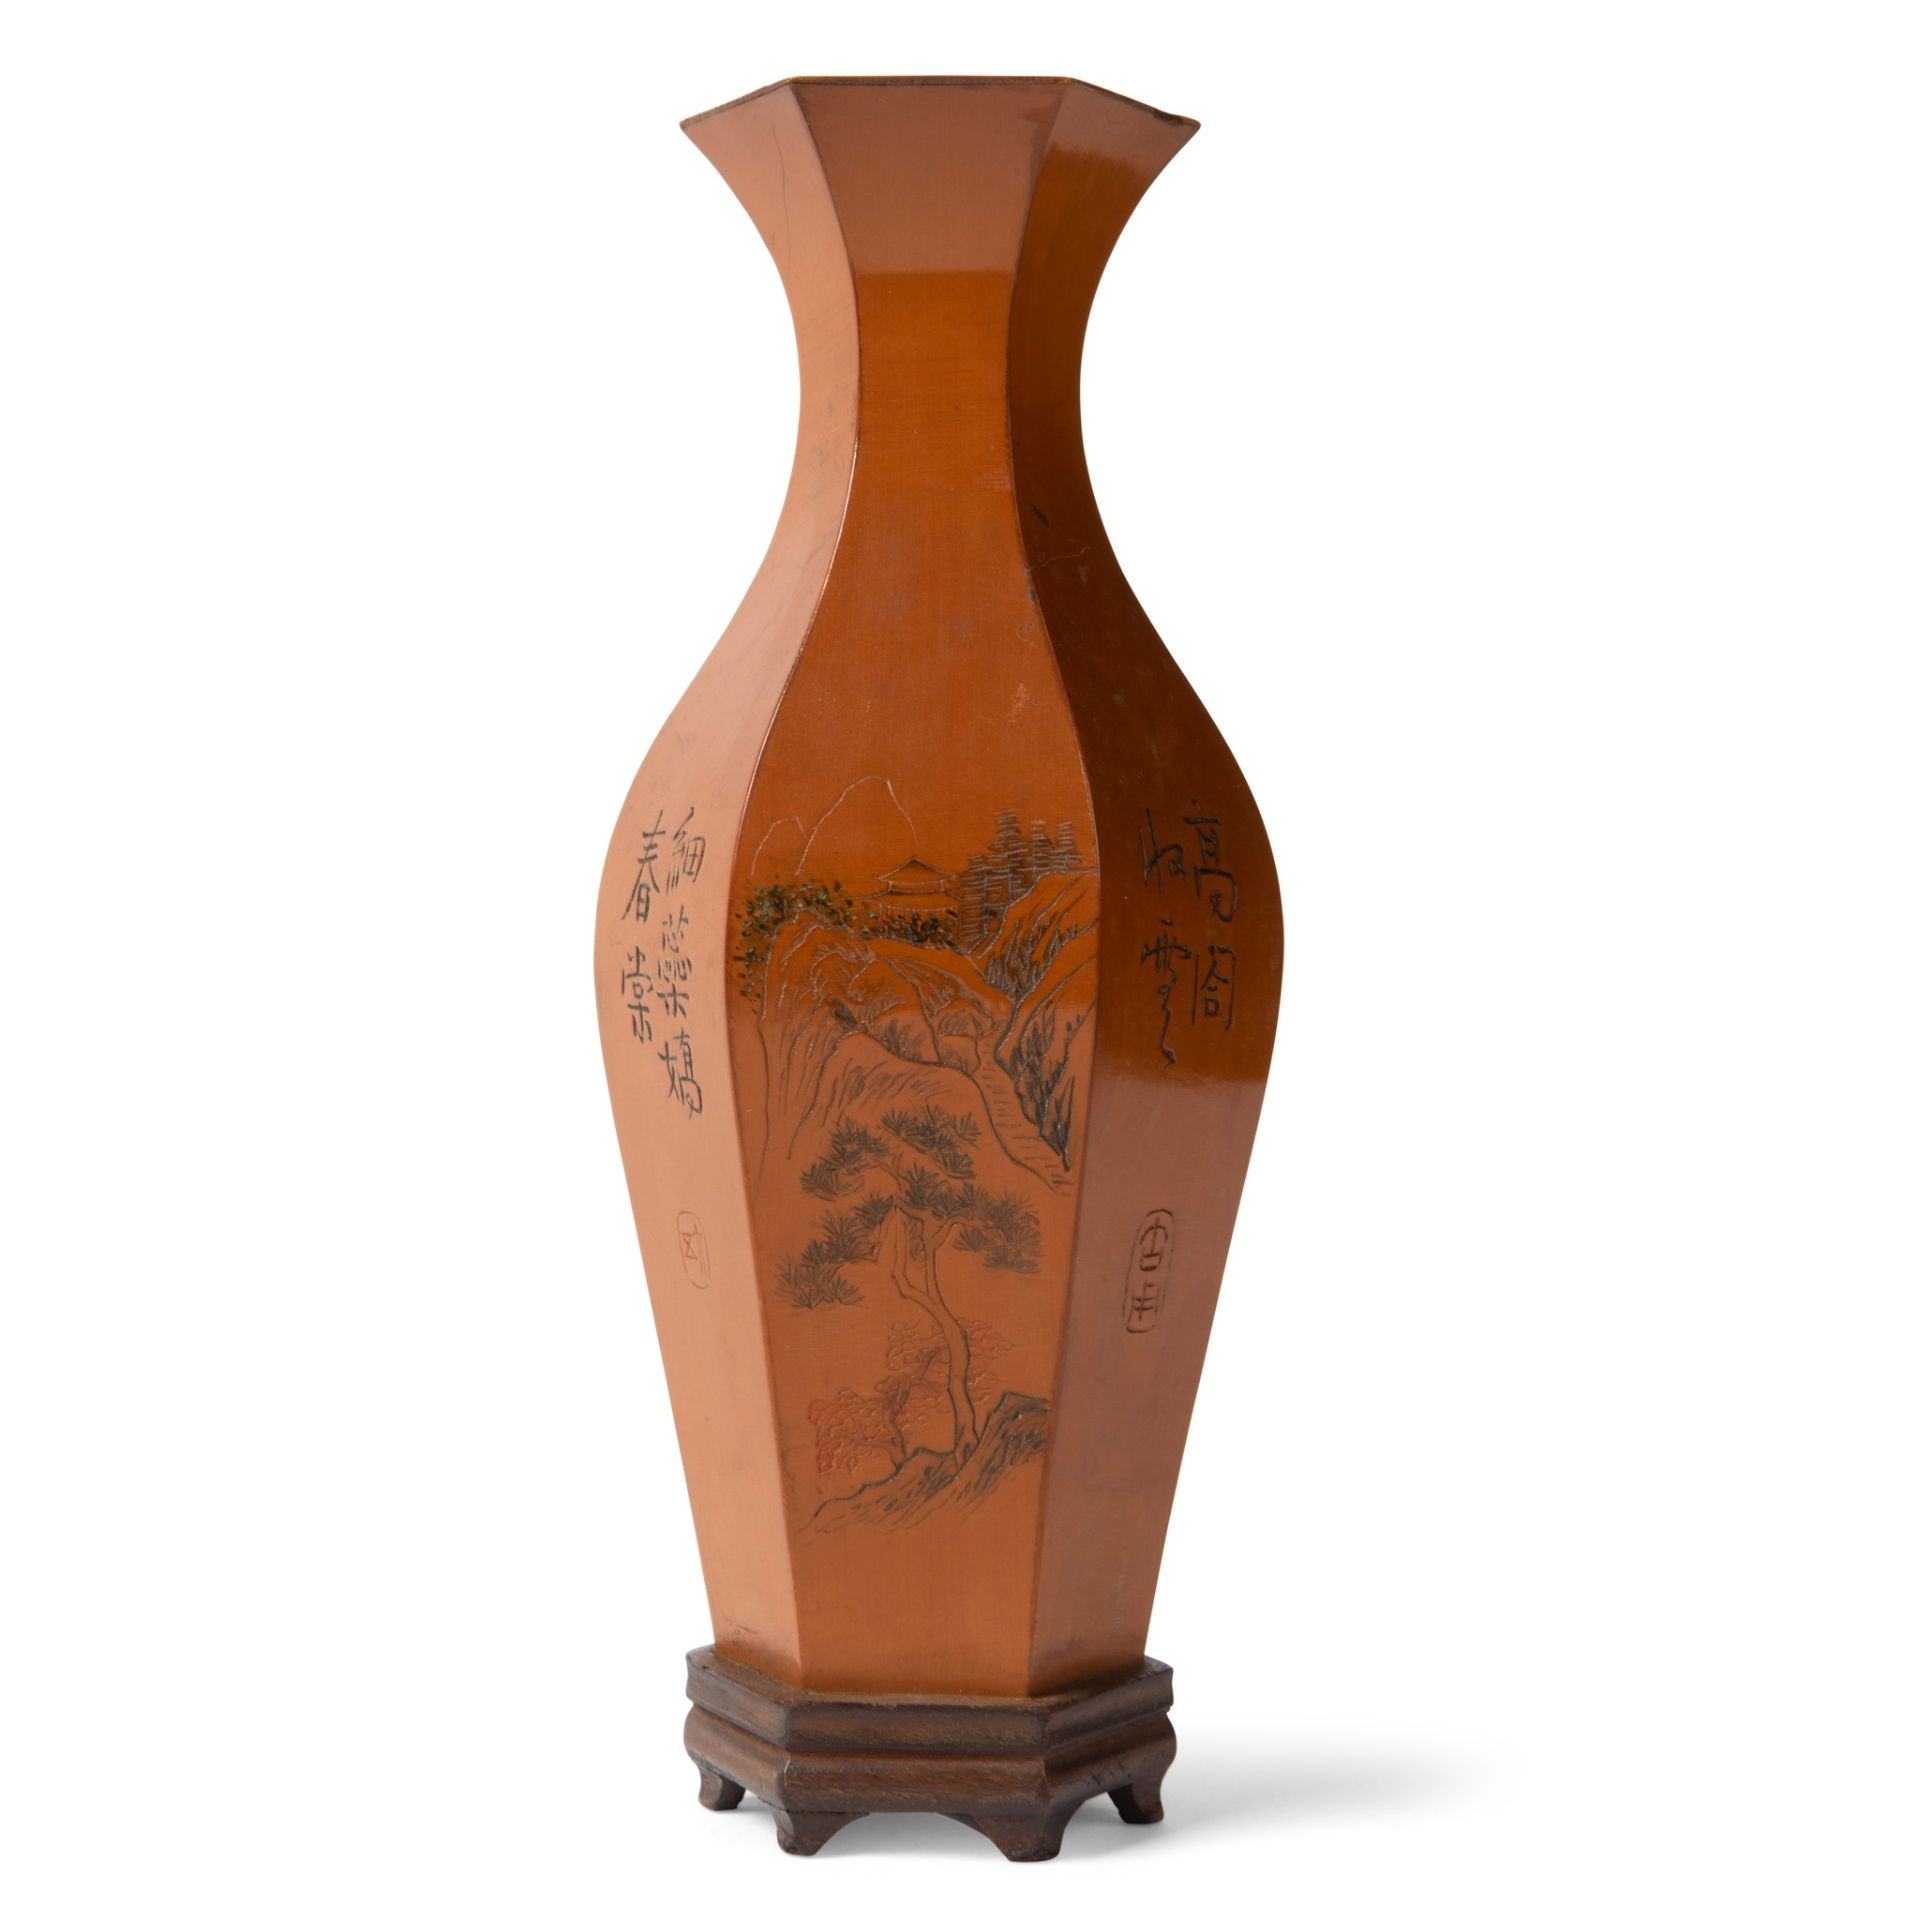 HEXAGONAL VASE WITH BAMBOO APPLIQUE LATE QING DYNASTY-REPUBLIC PERIOD, 19TH-20TH CENTURY